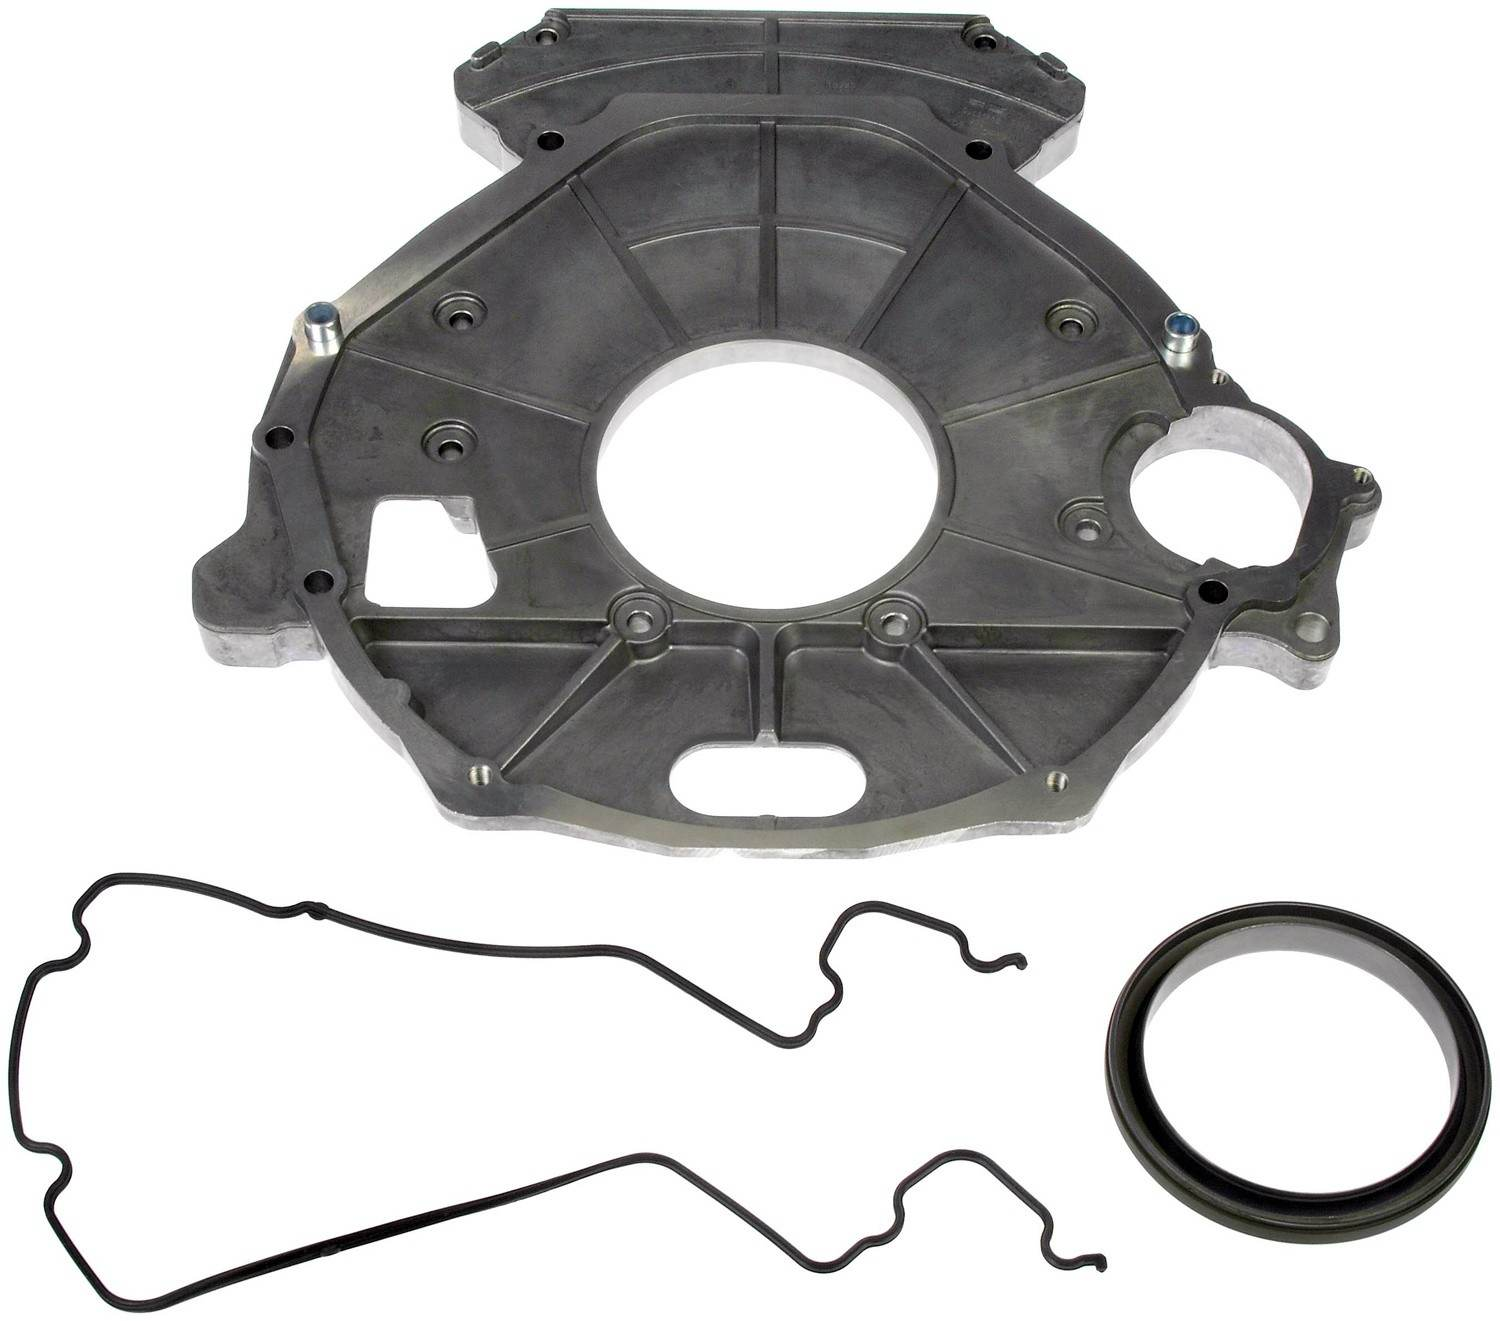 Engine Rear Main Seal Cover Dorman Fits 03-07 Ford F-350